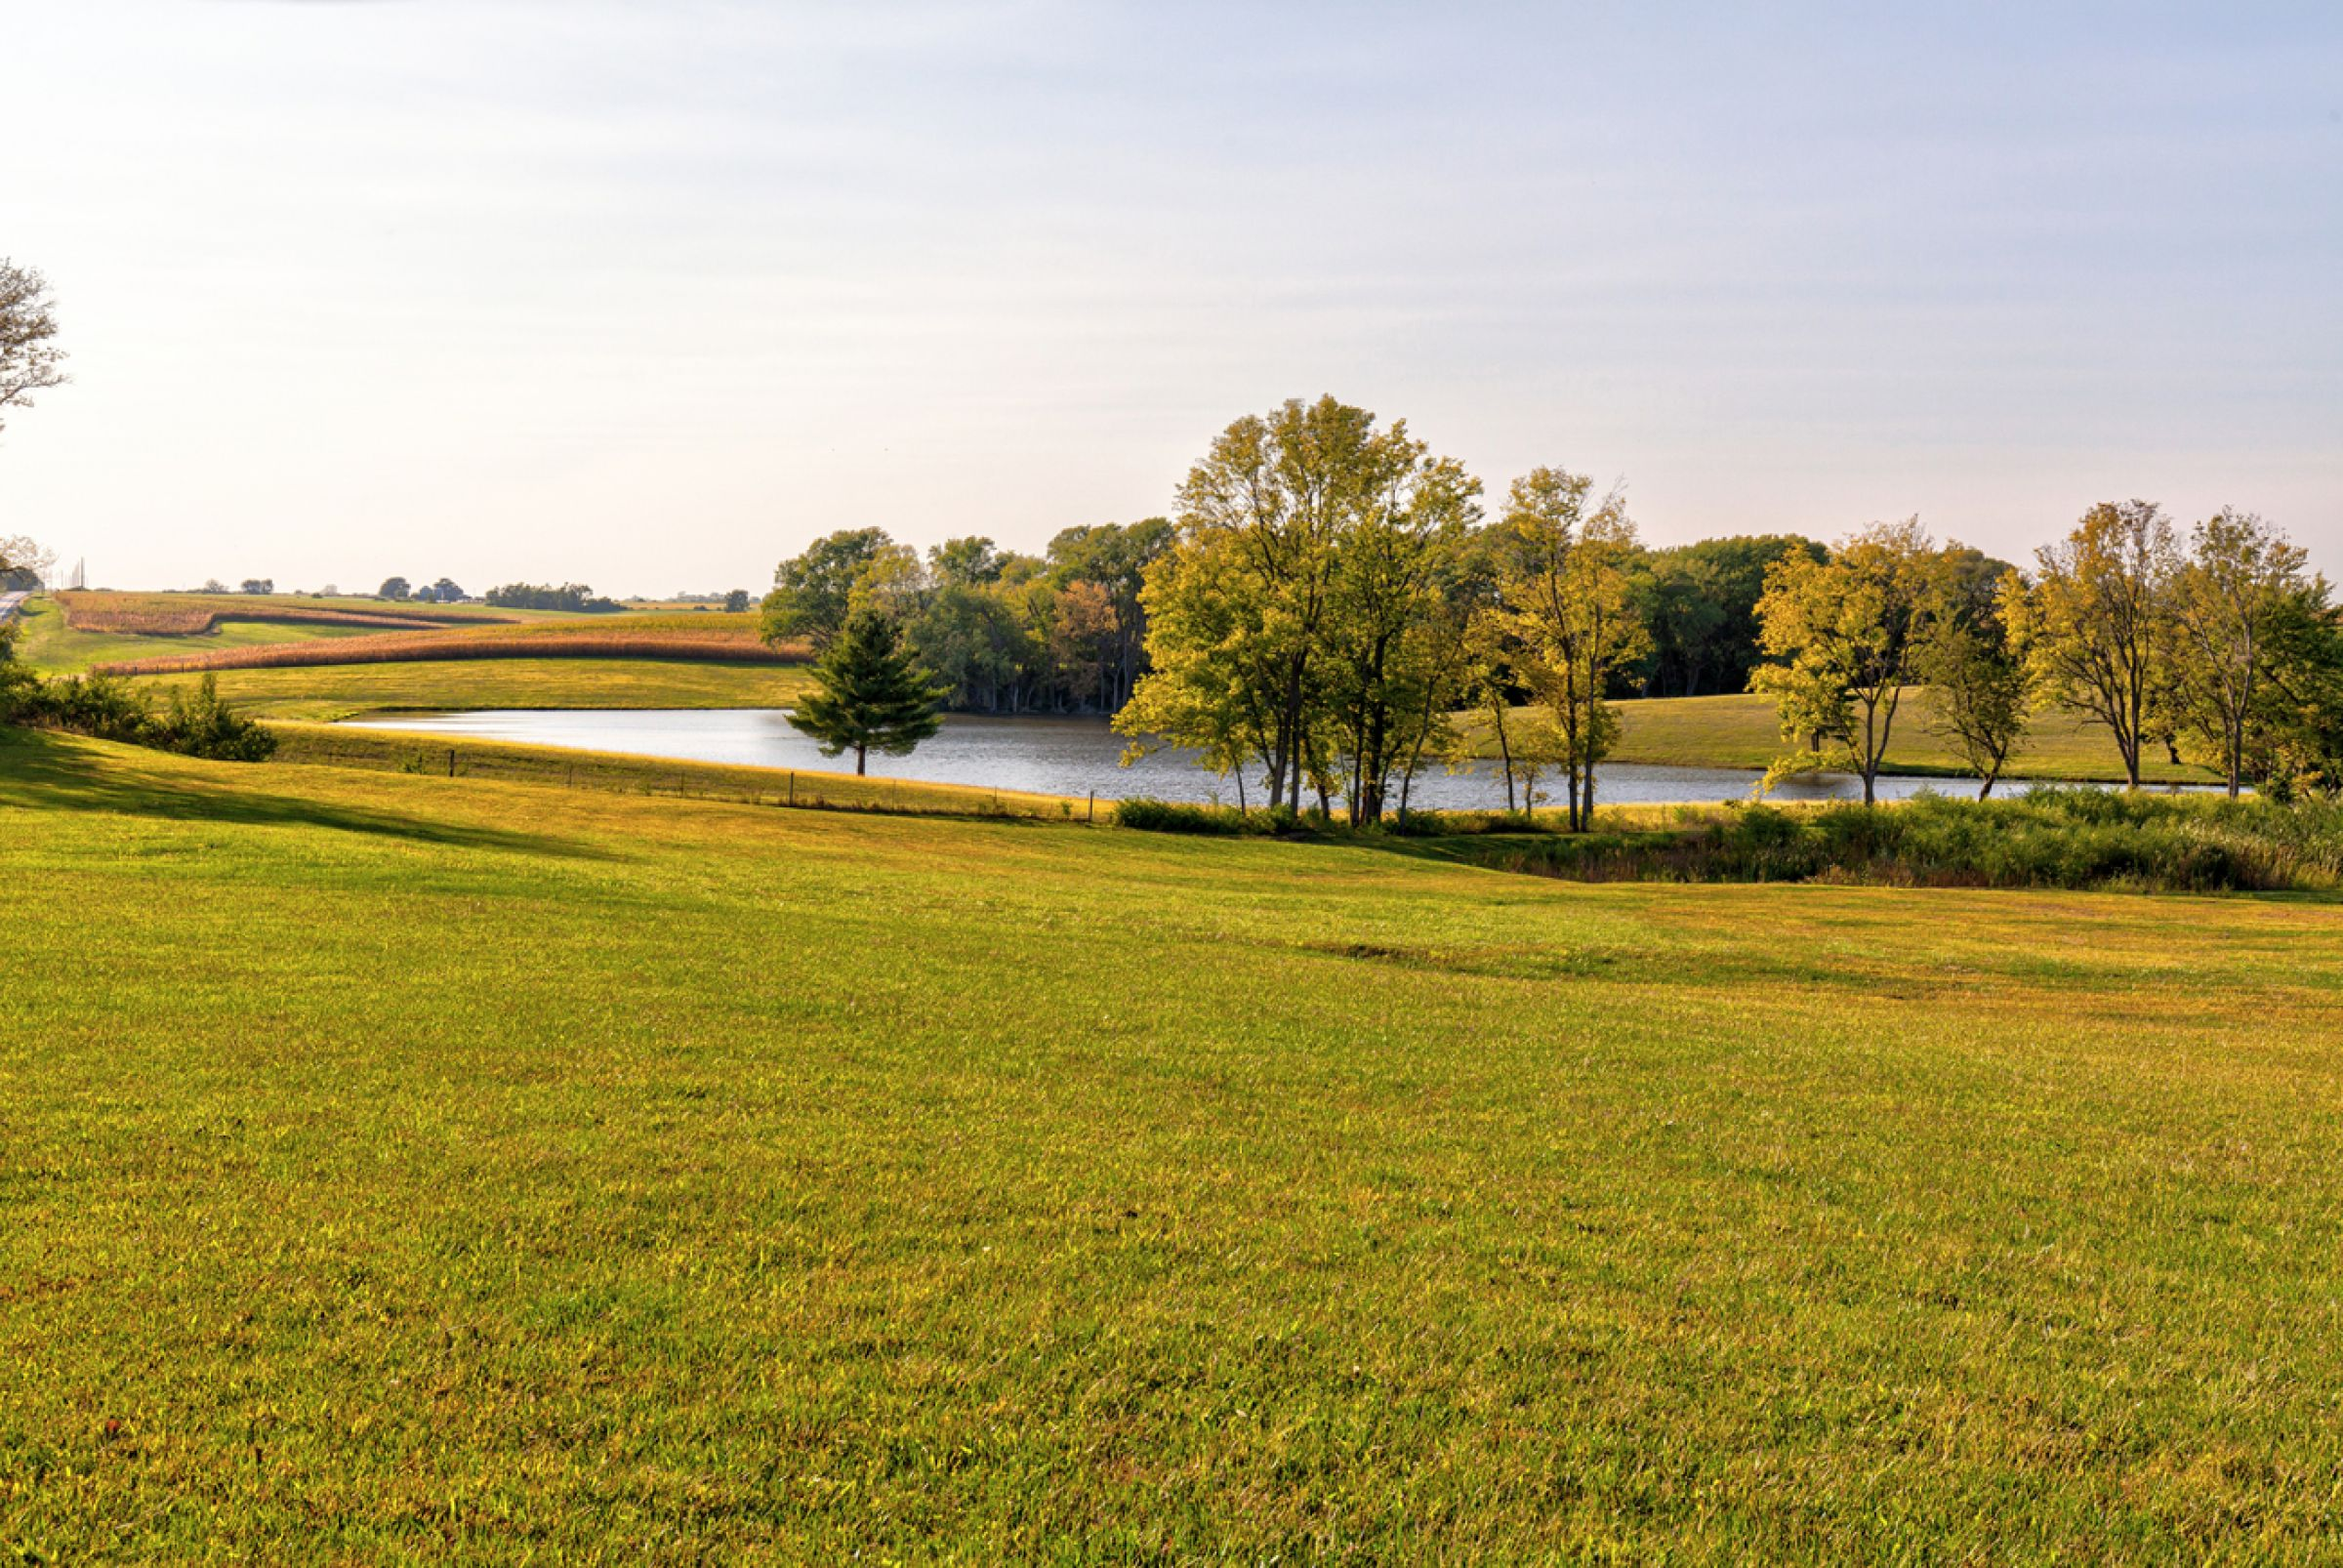 residential-warren-county-iowa-1-acres-listing-number-15175-1-2020-09-16-151256.jpg